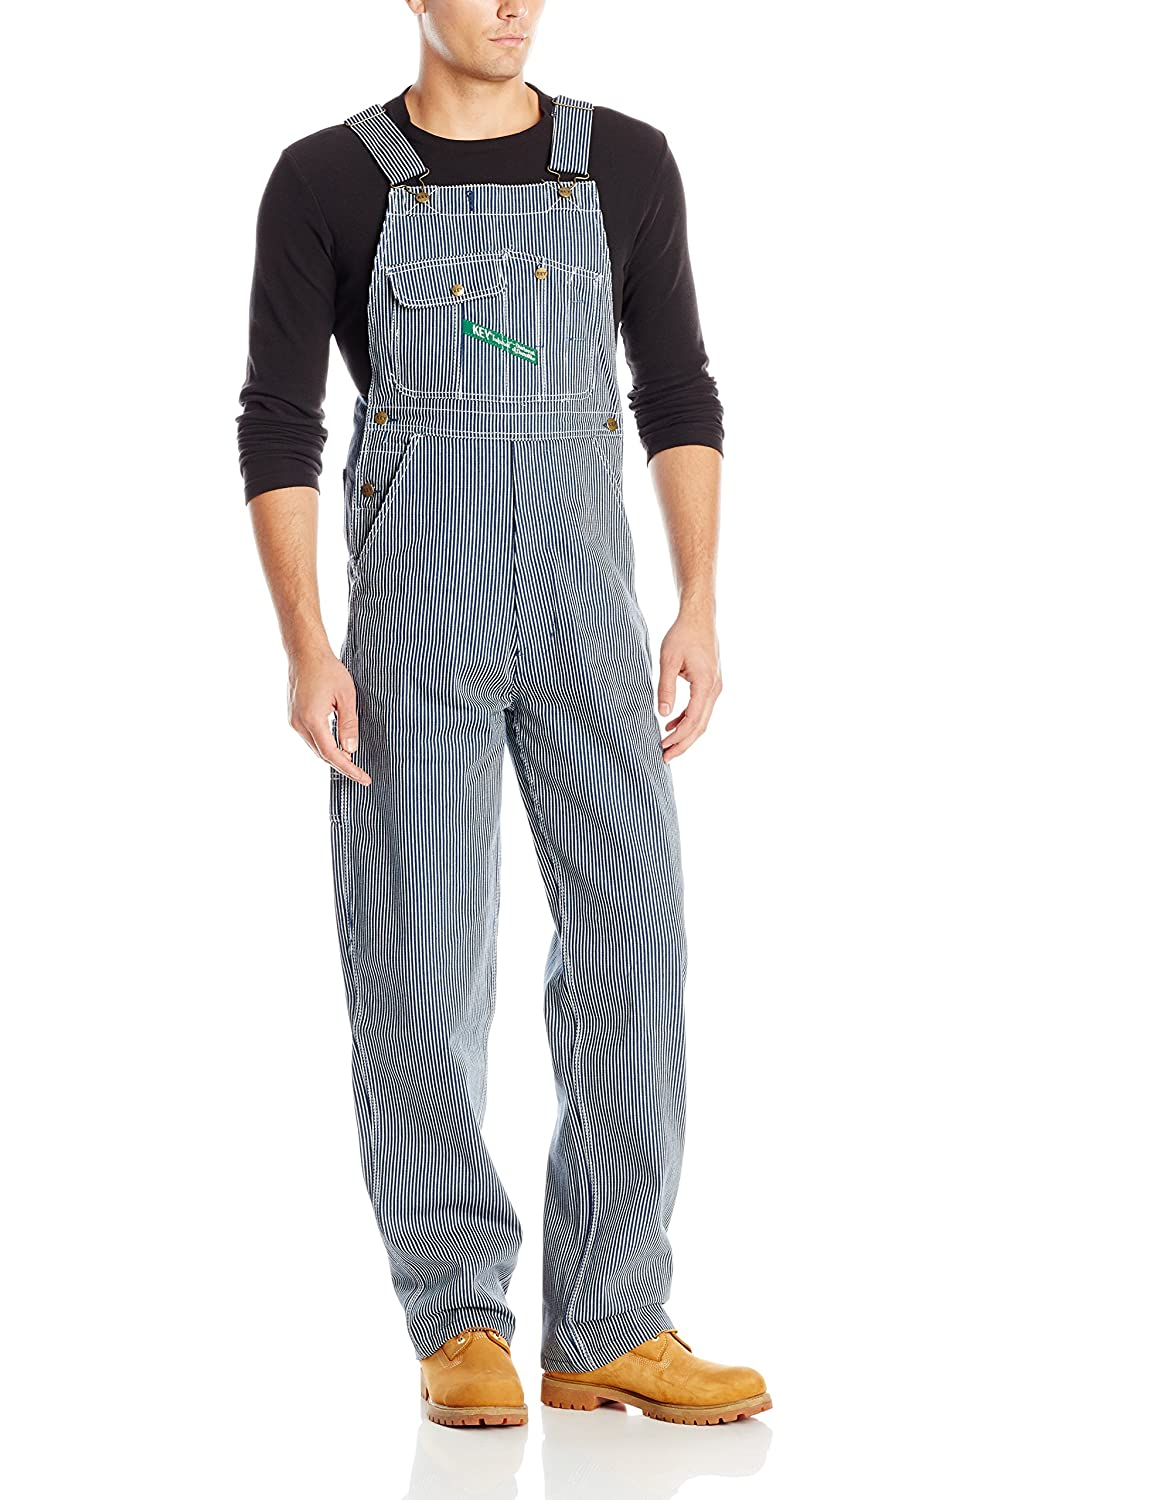 Edwardian Men's Pants, Trousers, Overalls Key Apparel Mens Hickory Stipe High Back Bib Overall $54.97 AT vintagedancer.com